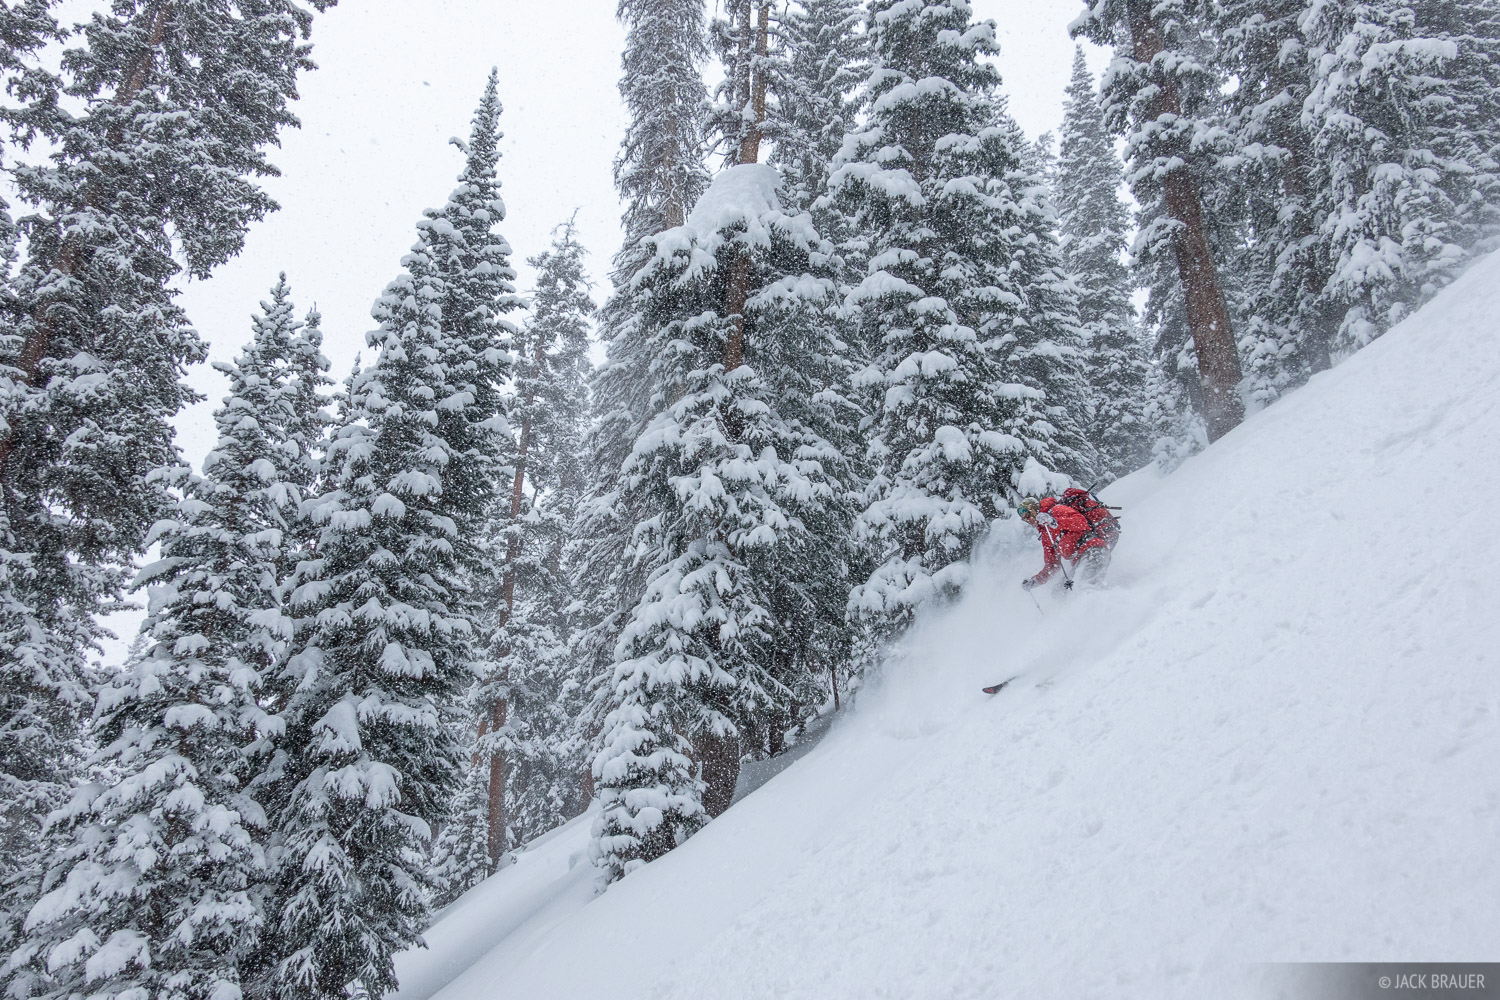 Tom Kelly skis deep powder in December.